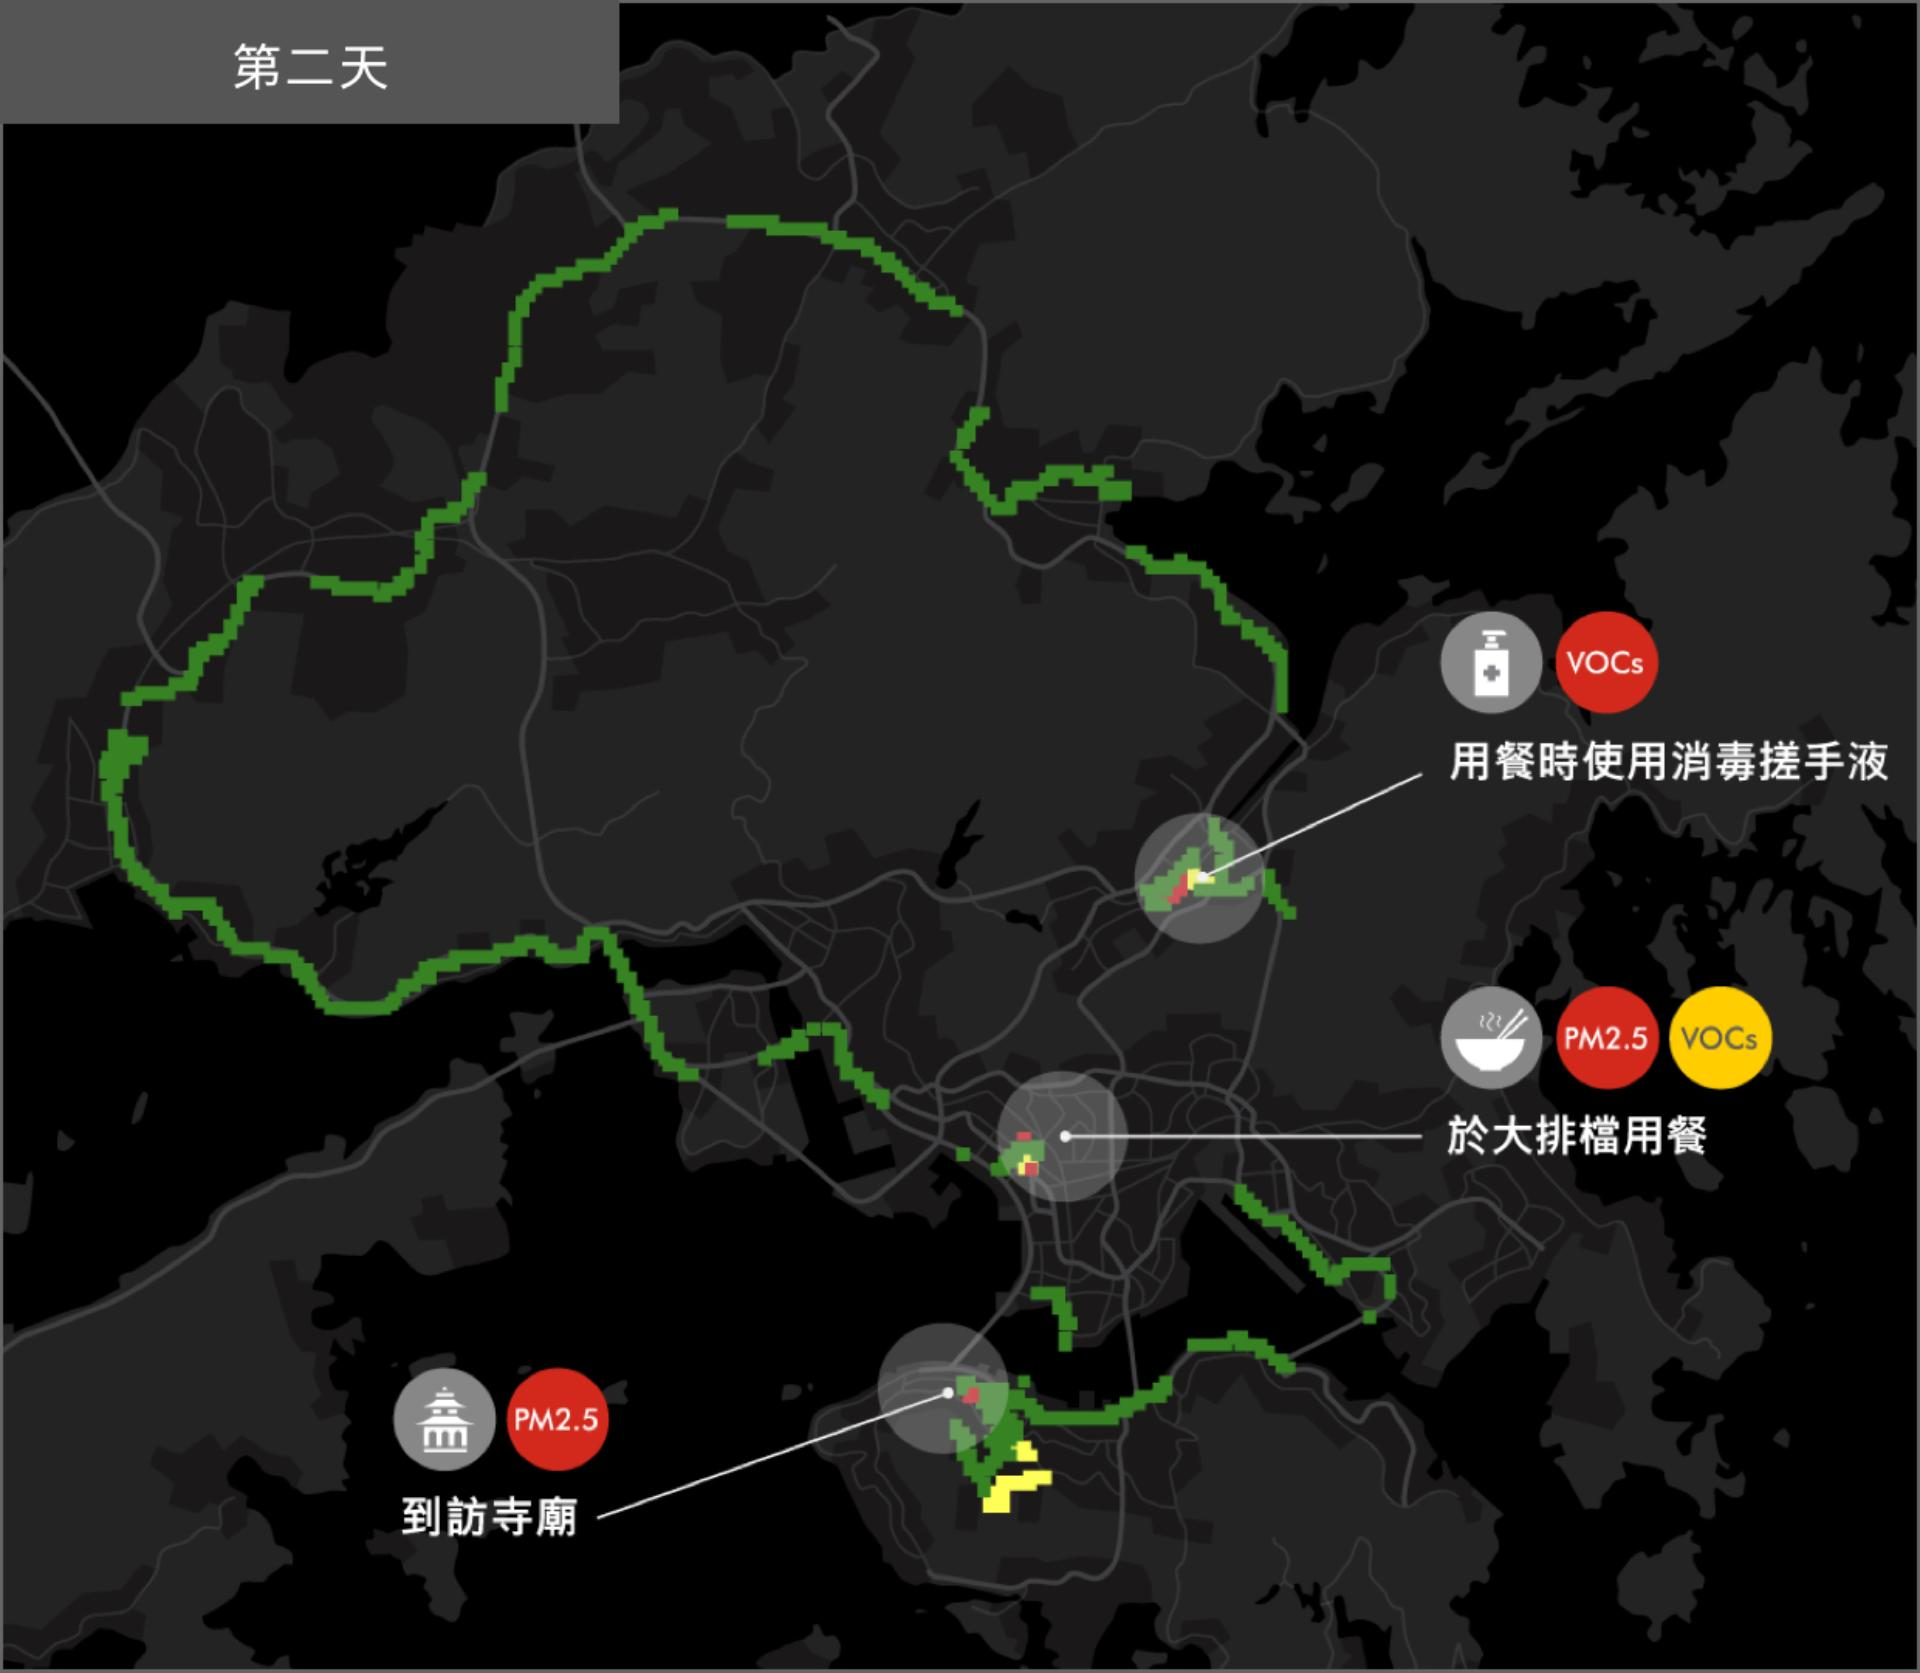 HK map for Melody's Day 2 trip